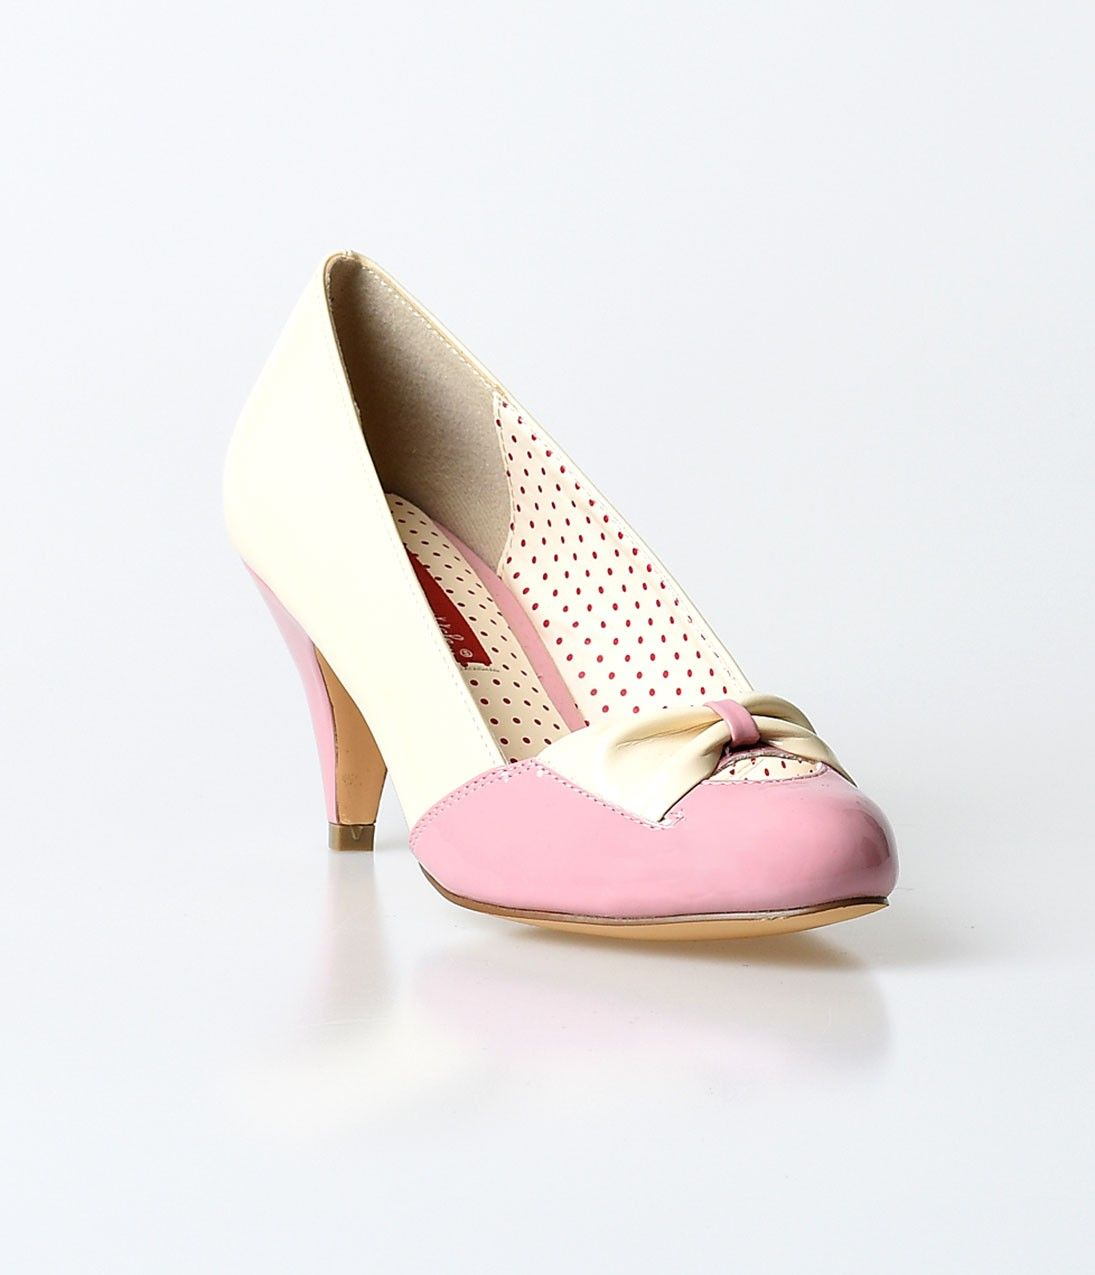 B A I T Dusty Pink Cream Patent Hanalee Kitten Heels 1950s Fashion Shoes Vintage Heels Vintage Shoes